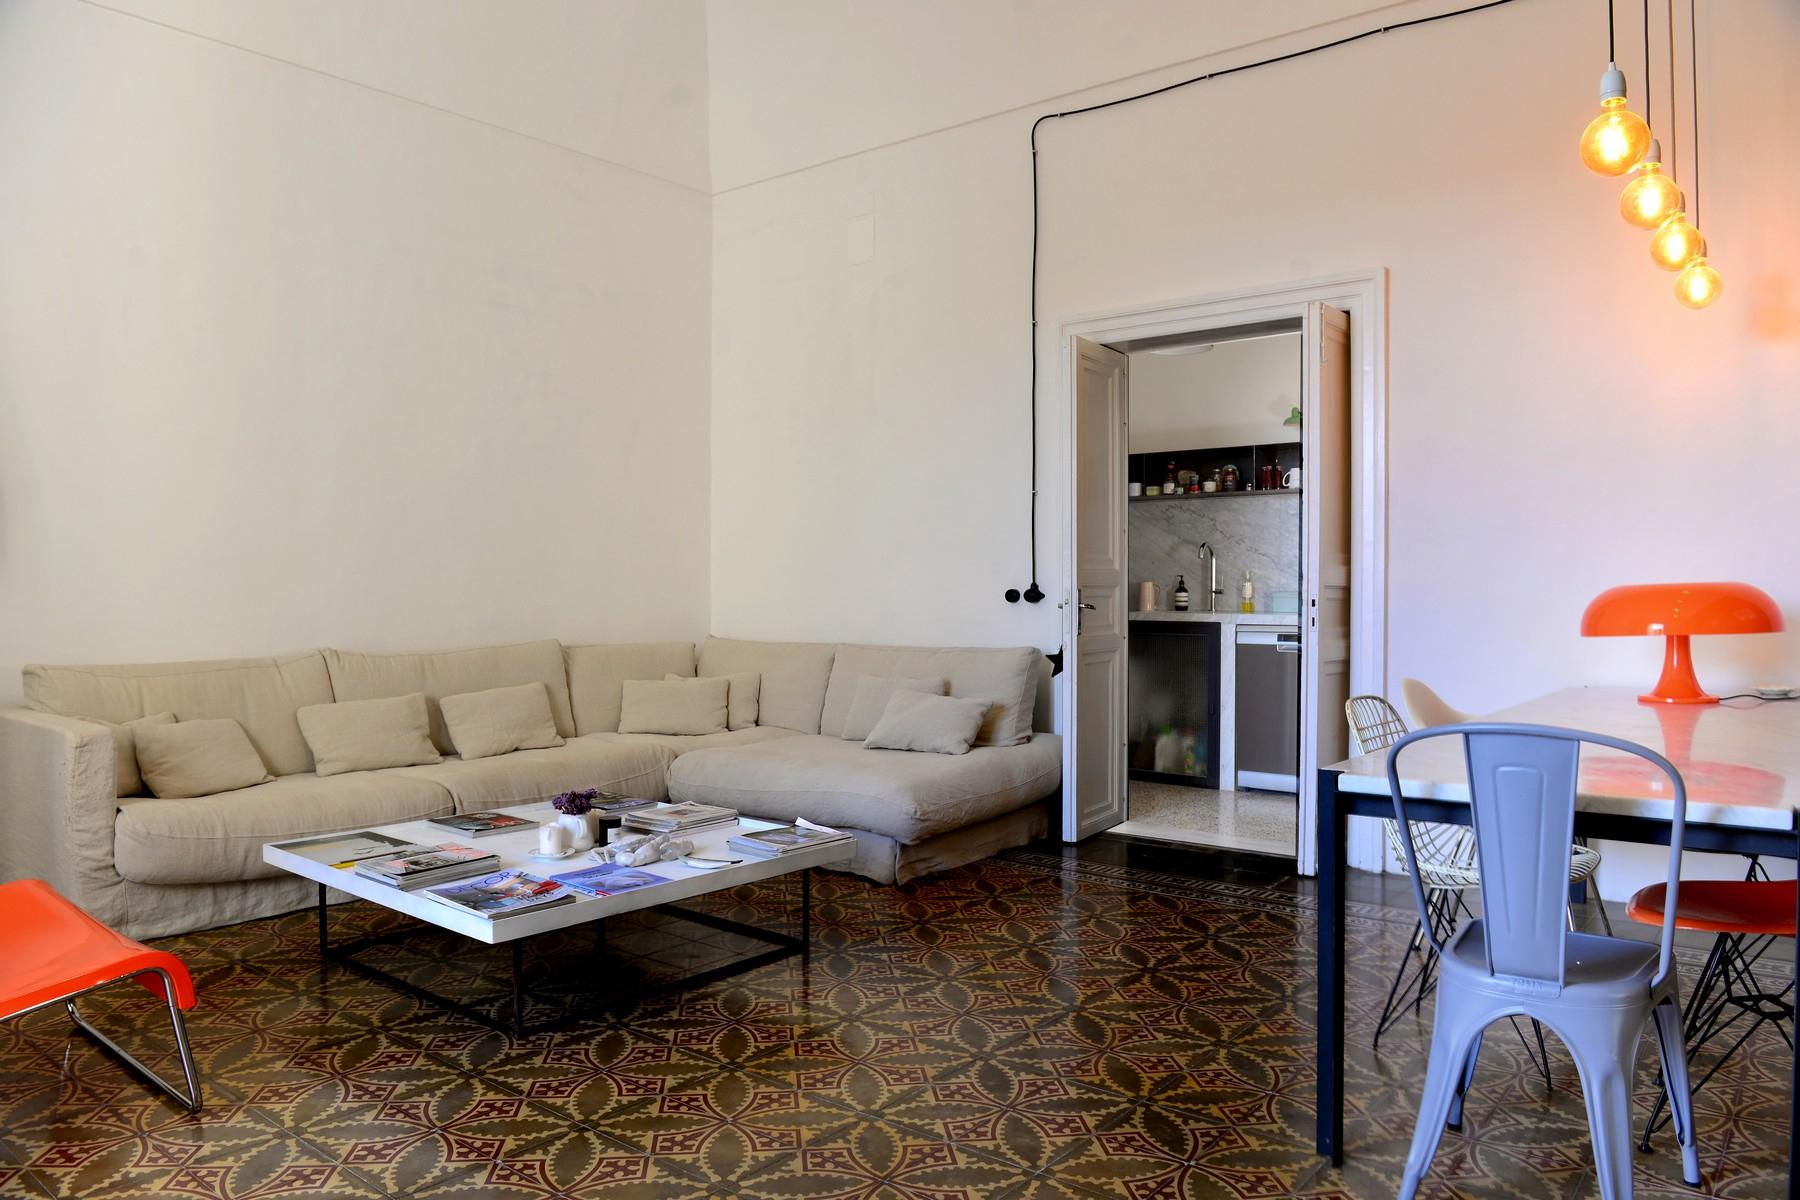 Renovated apartments with the original floors in Noto - 3